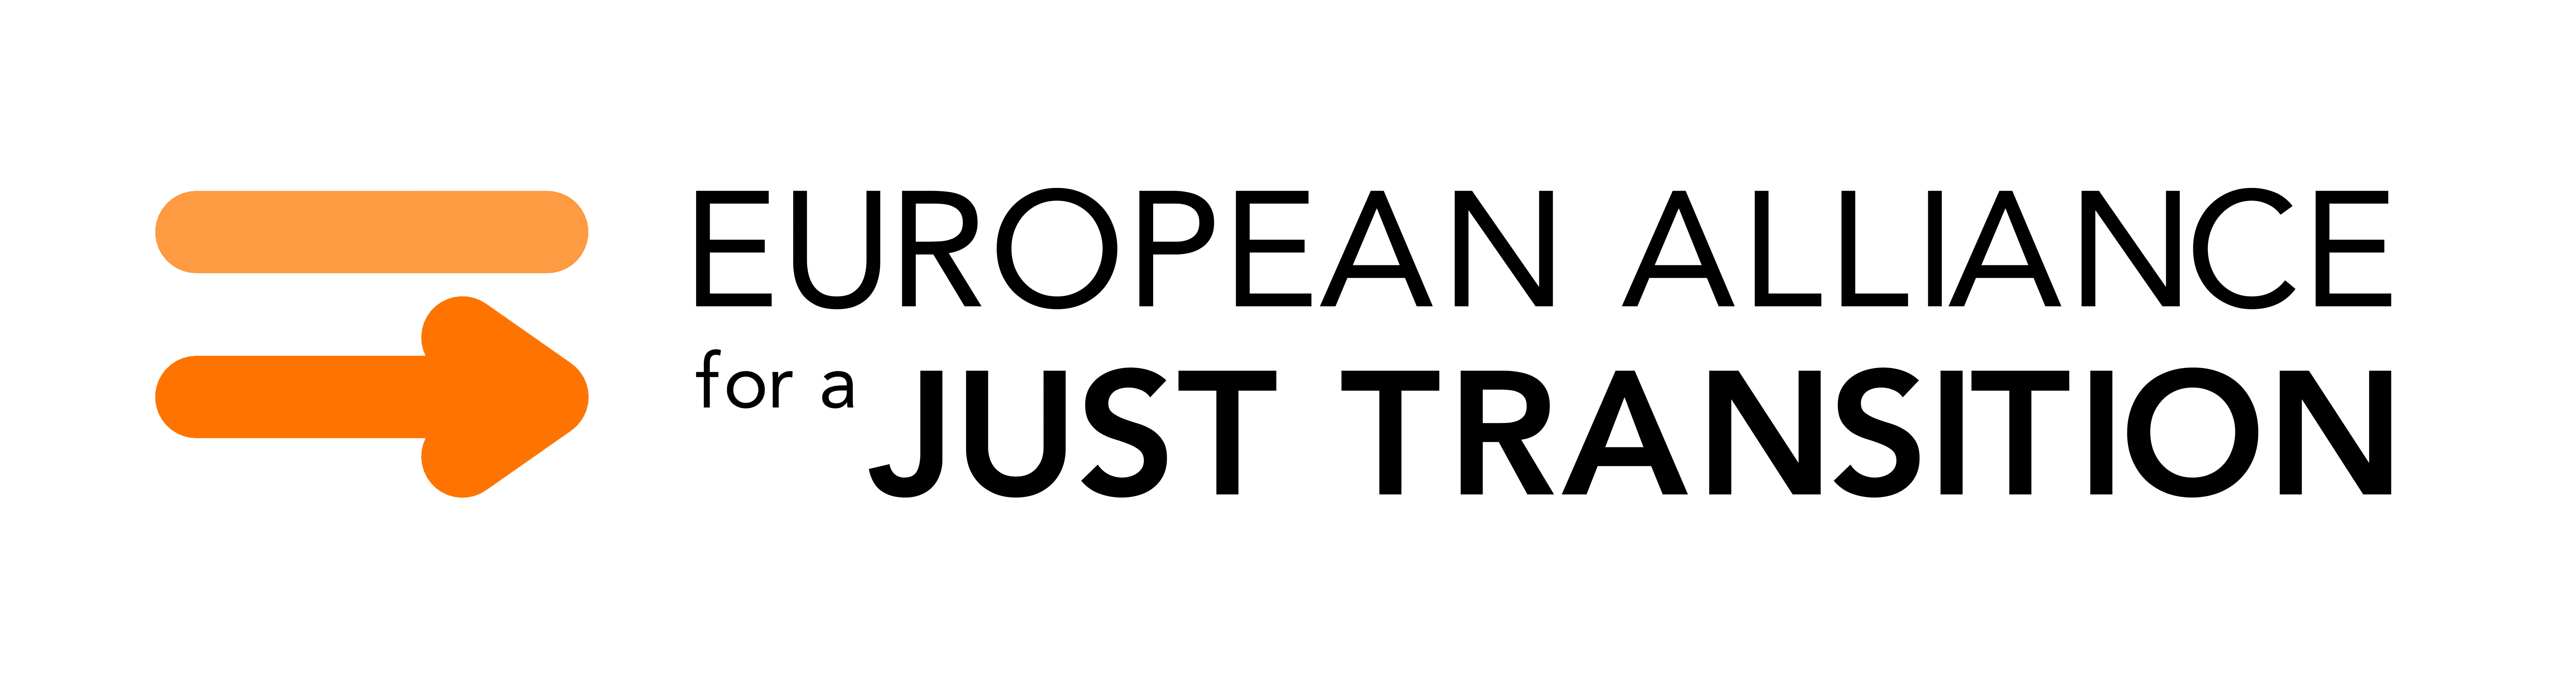 European Alliance for a Just Transition Logo